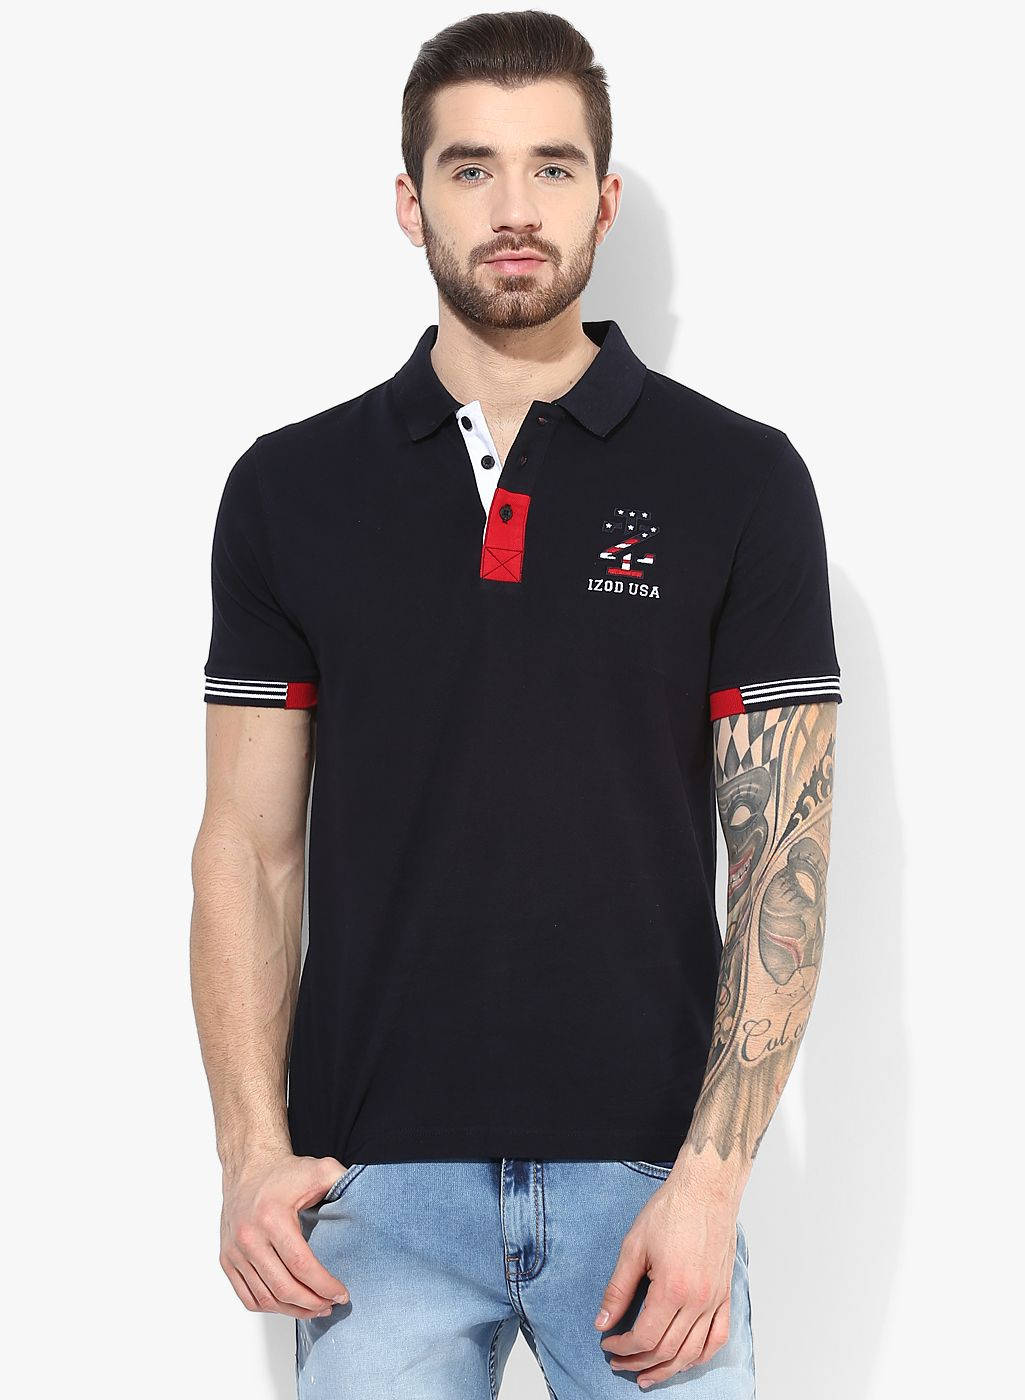 Buy Izod Navy Blue Polo T-Shirt for Men Online India, Best Prices, Reviews | IZ073MA99NQMINDFAS